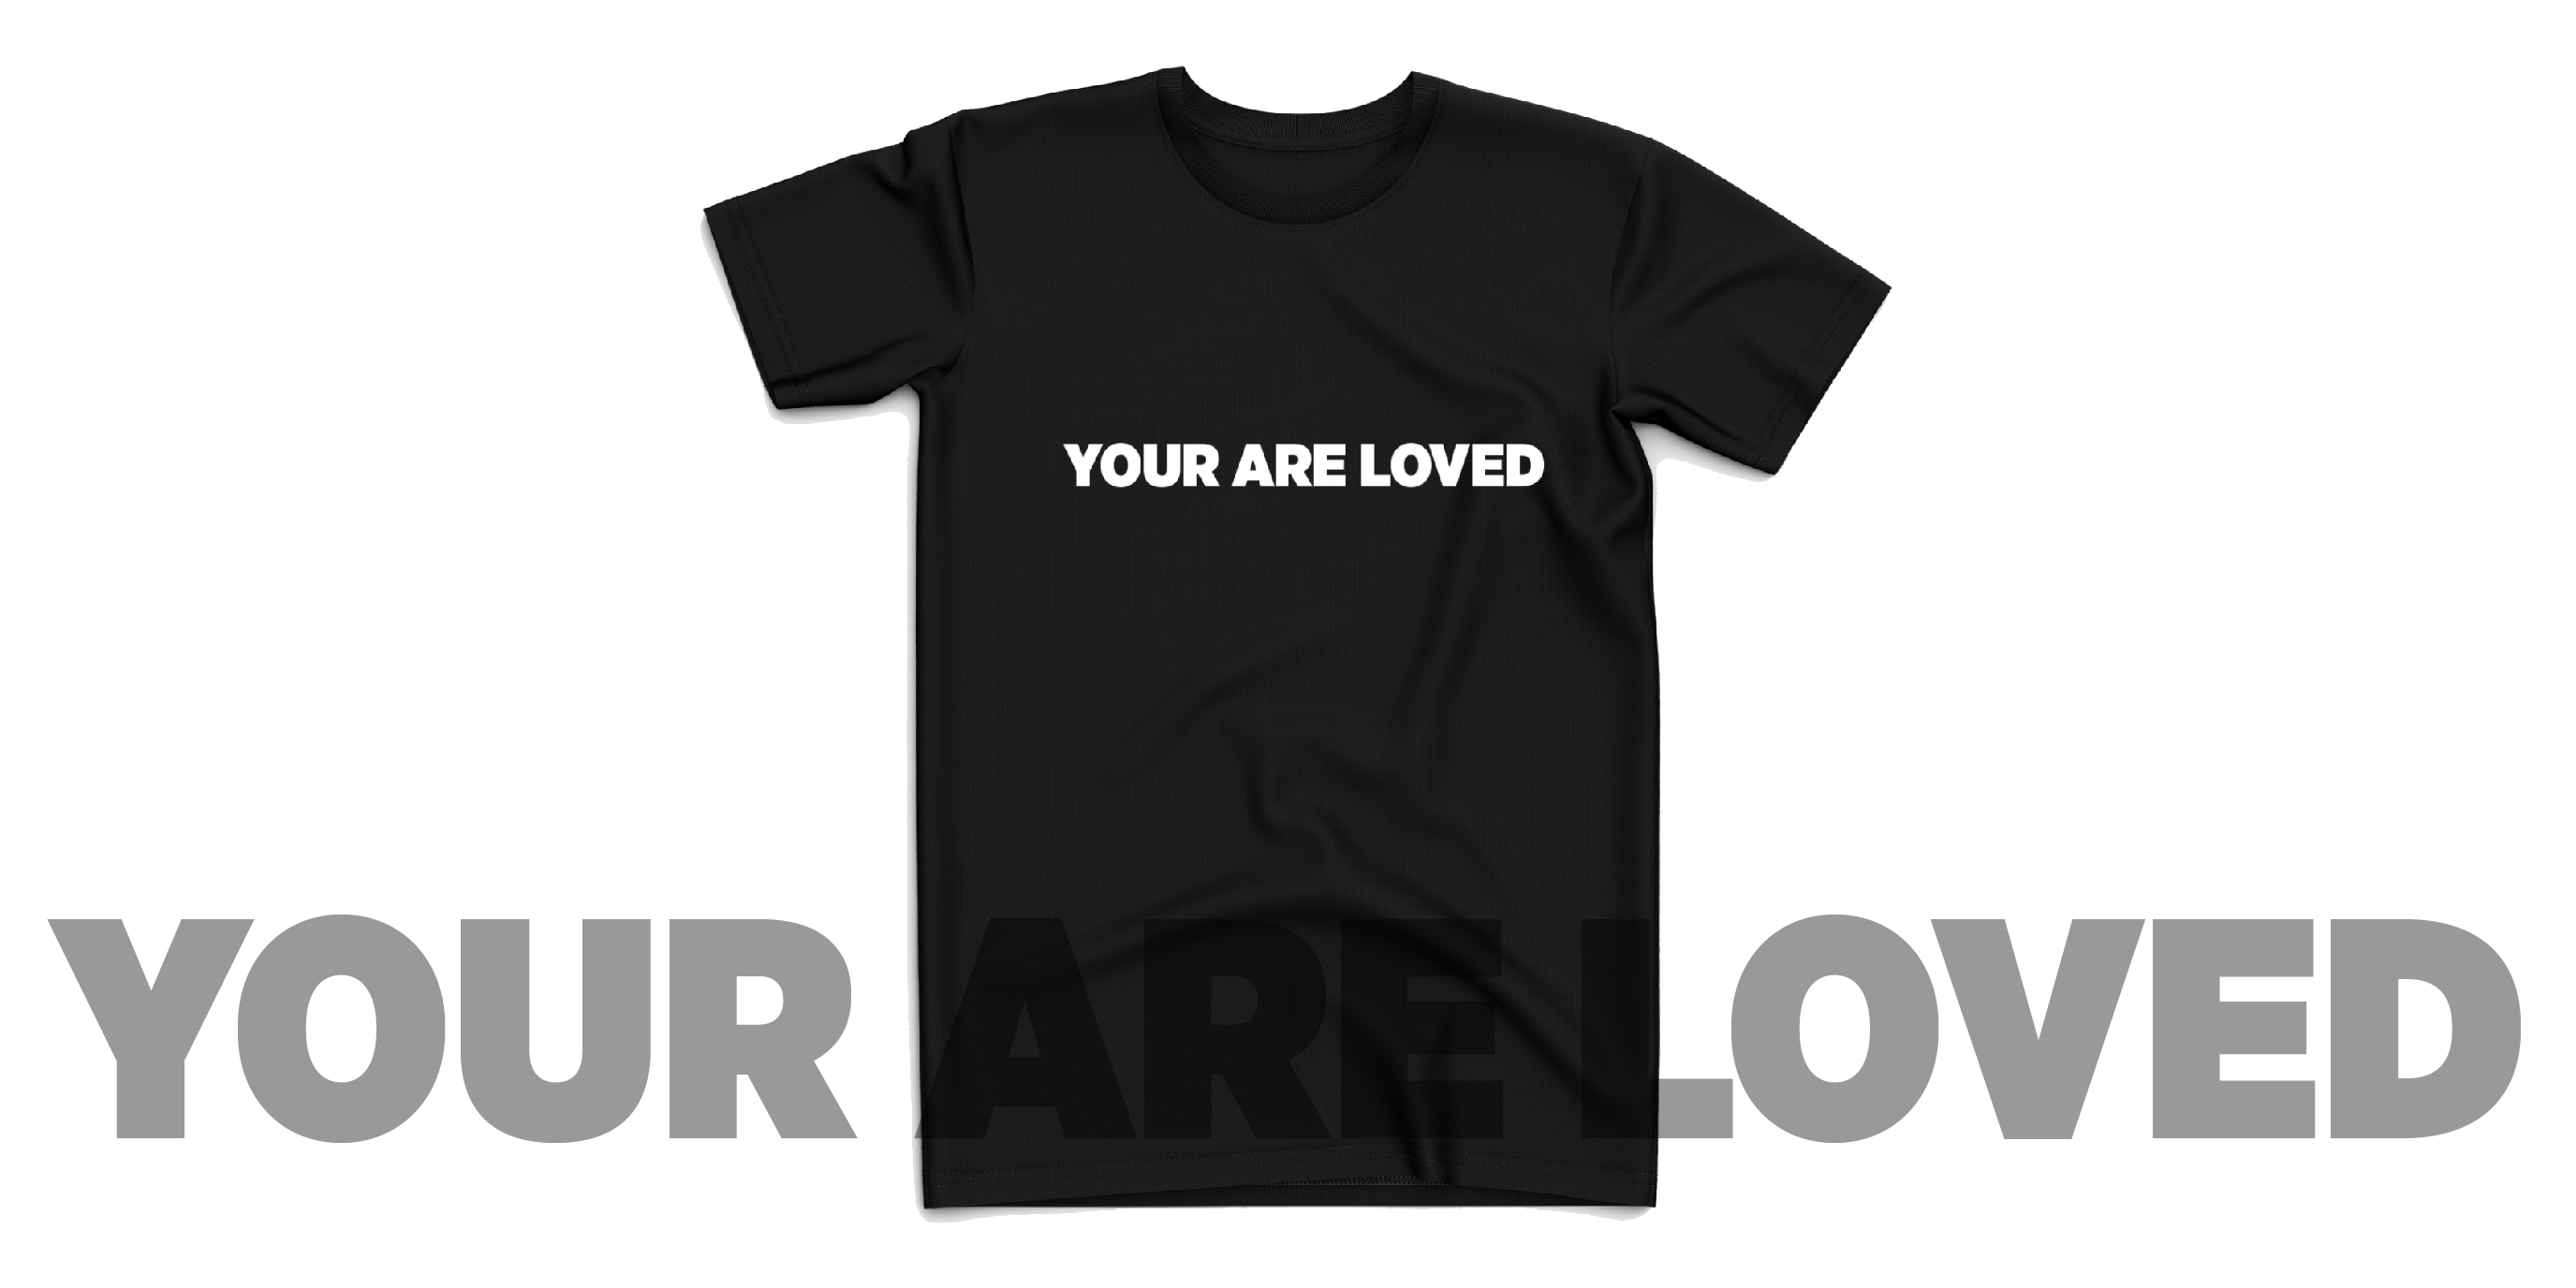 YOUR ARE LOVED 01